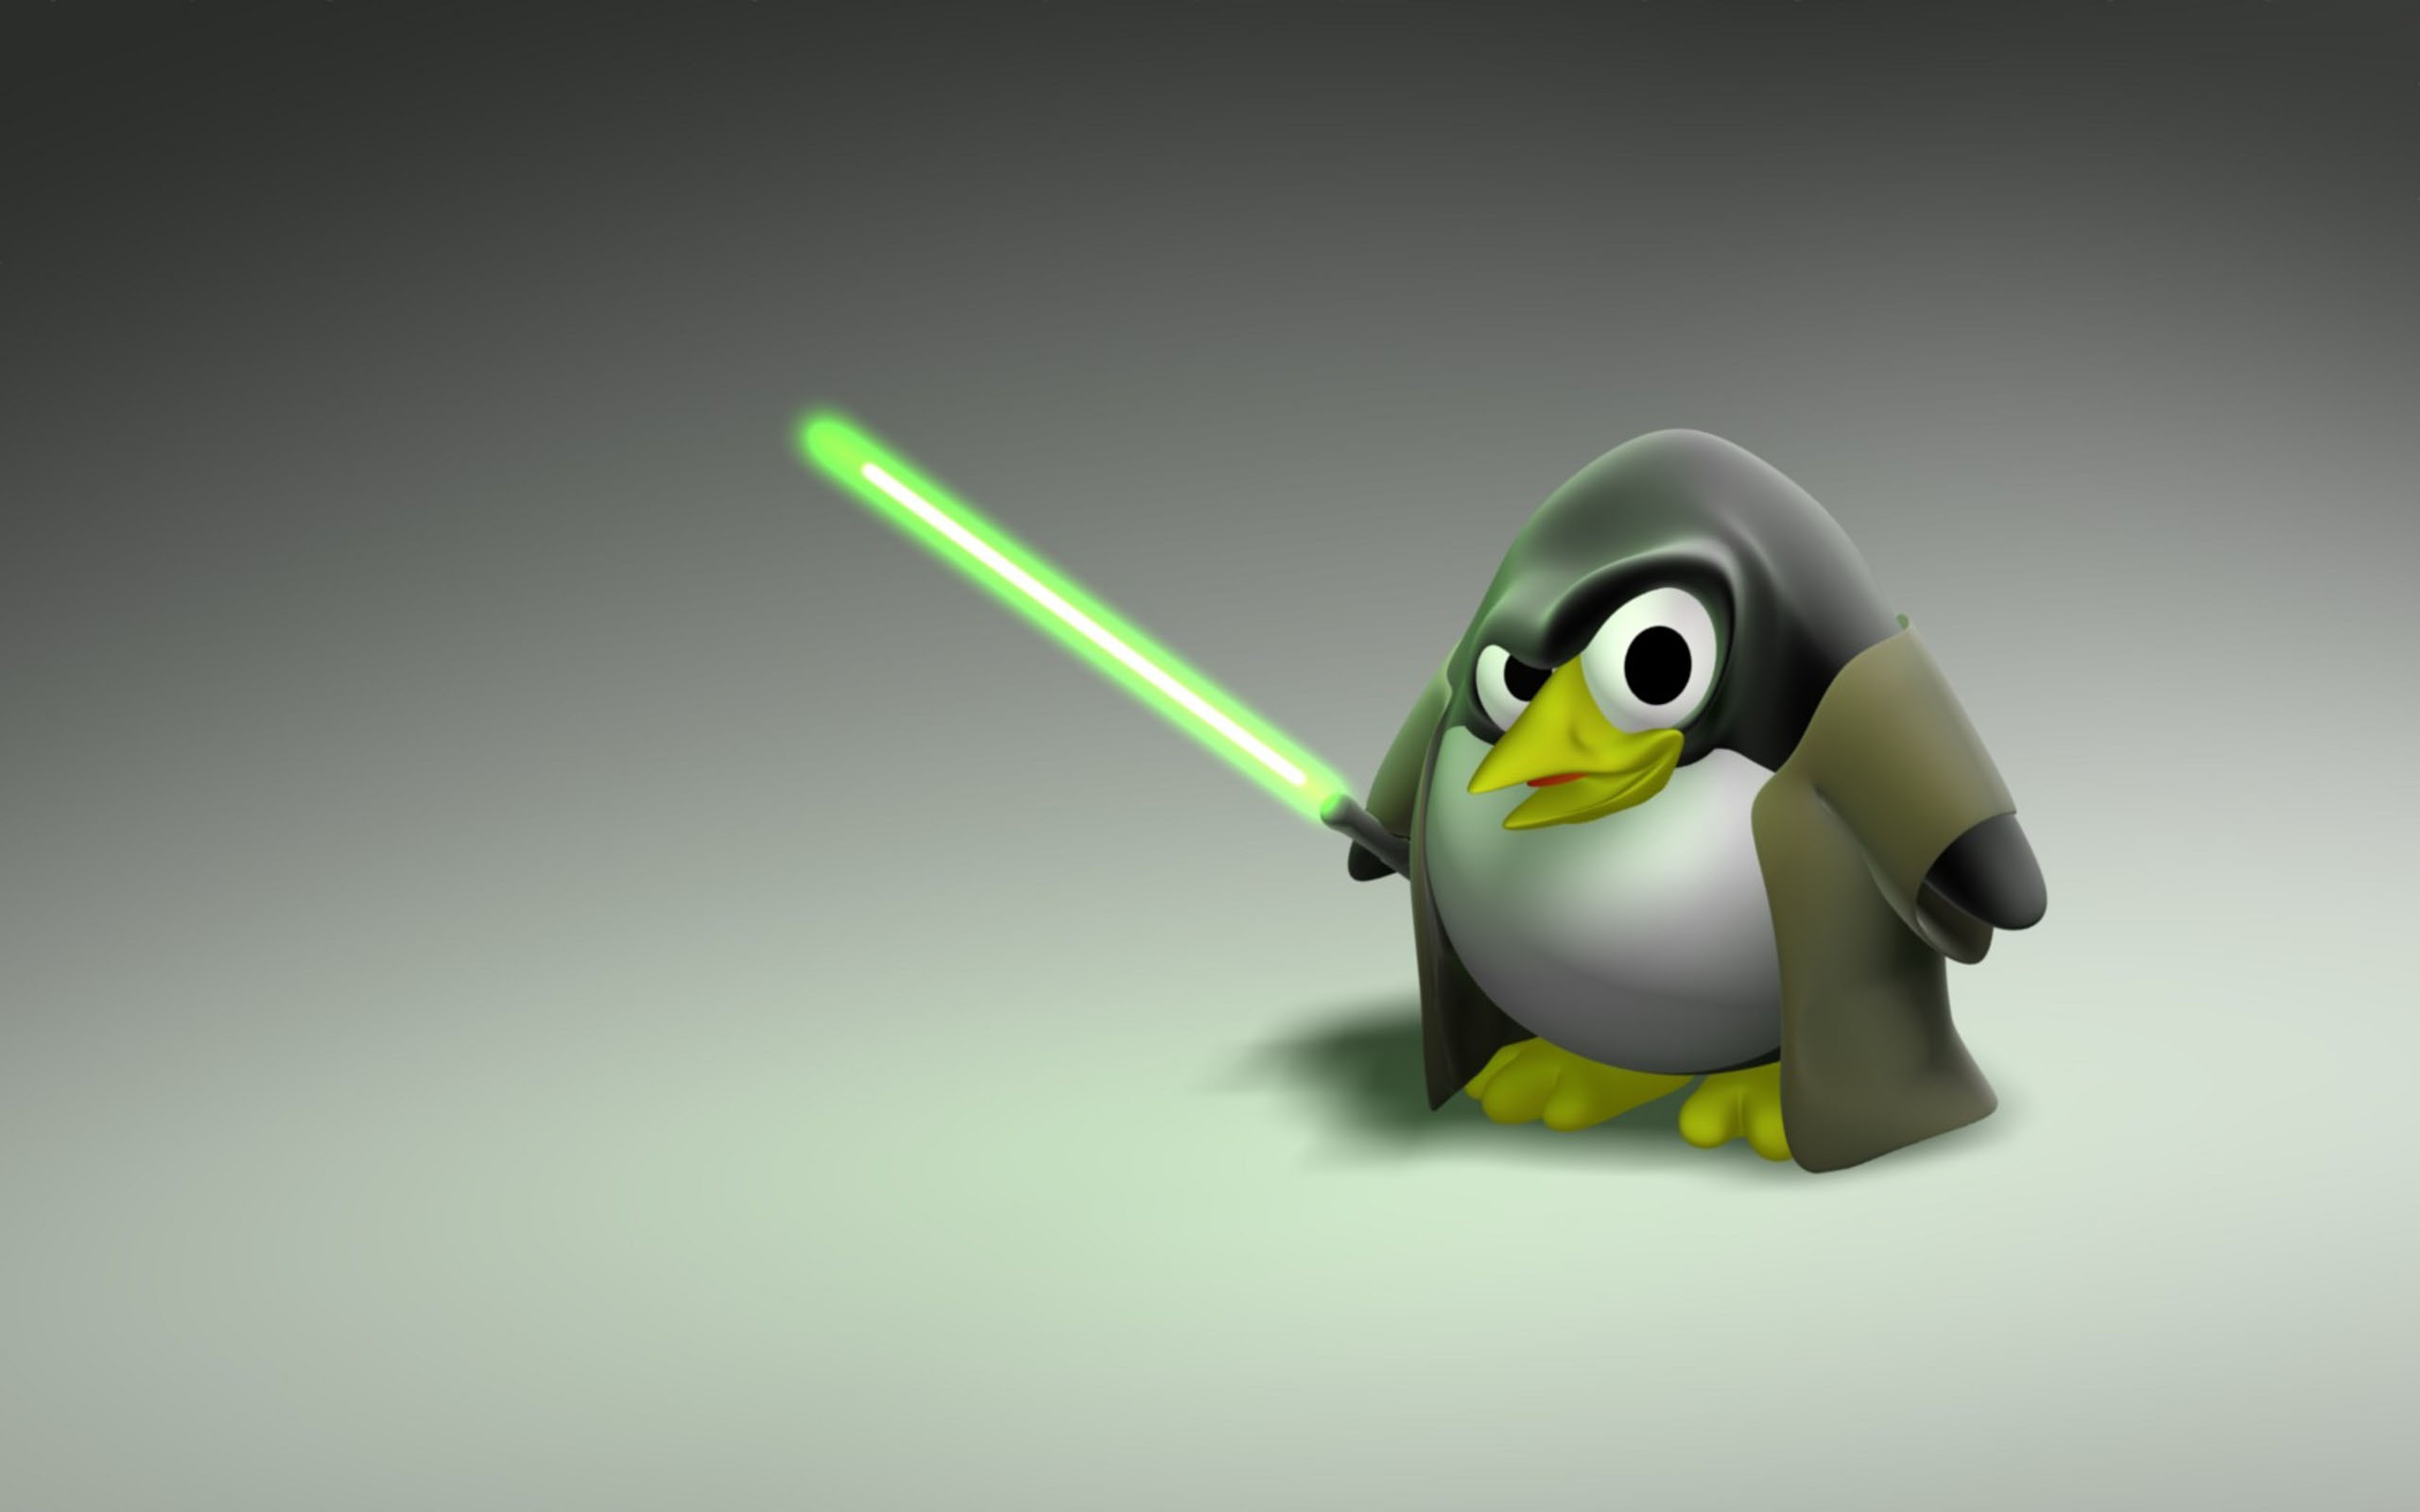 ... Linux wallpapers 9 ...